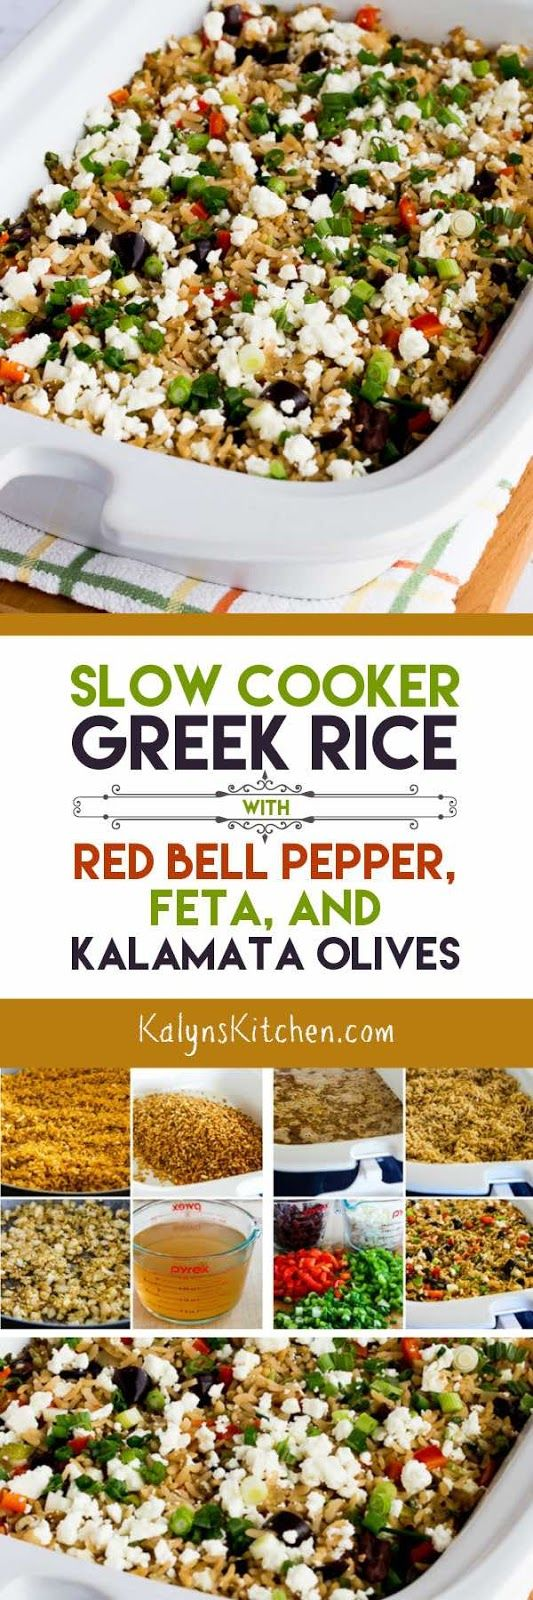 If you need a side dish for grilled meat that can cook without heating up the house, this Slow Cooker Greek Rice with Red Bell Pepper, Feta, and Kalamata Olives is amazing. This tasty rice is gluten-free and South Beach Diet friendly. [found on KalynsKitchen.com]